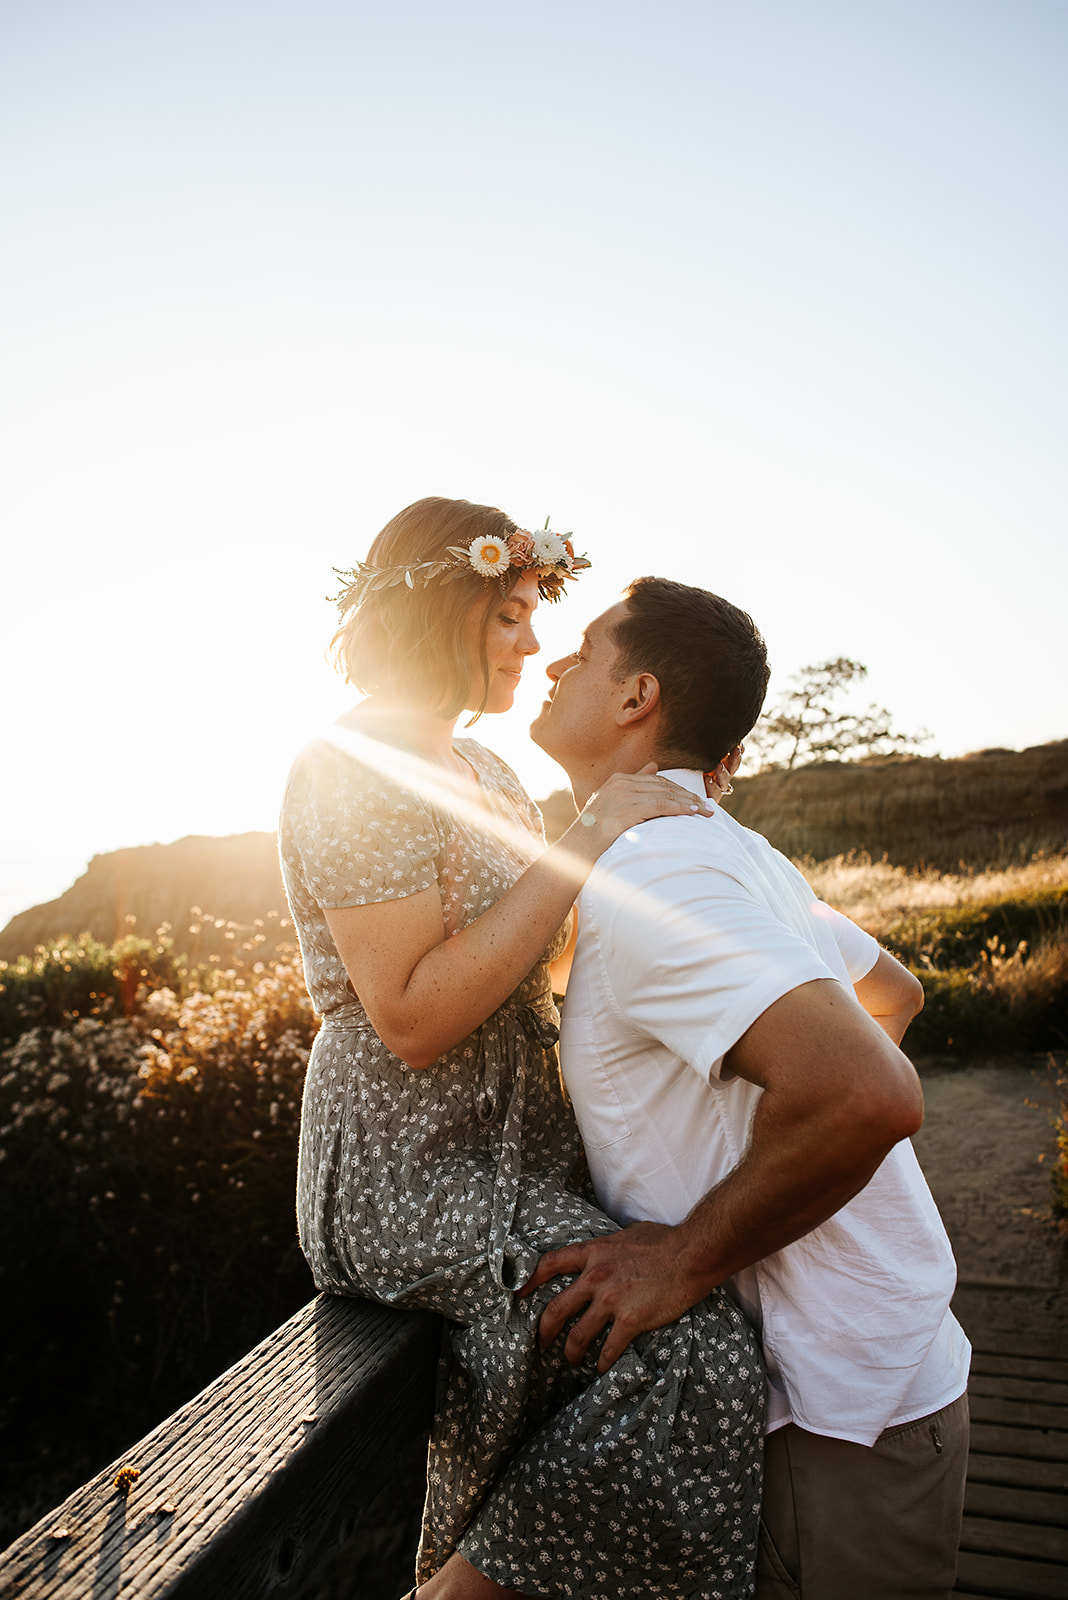 SoCal_Standard_-_San_Diego_Engagement_Photographer_-_Modern_Candid_Destination_Photographer_-_Engagement_Session_at_Torrey_Pines_San_Diego_California_-_Grace_and_Robert-161.jpg